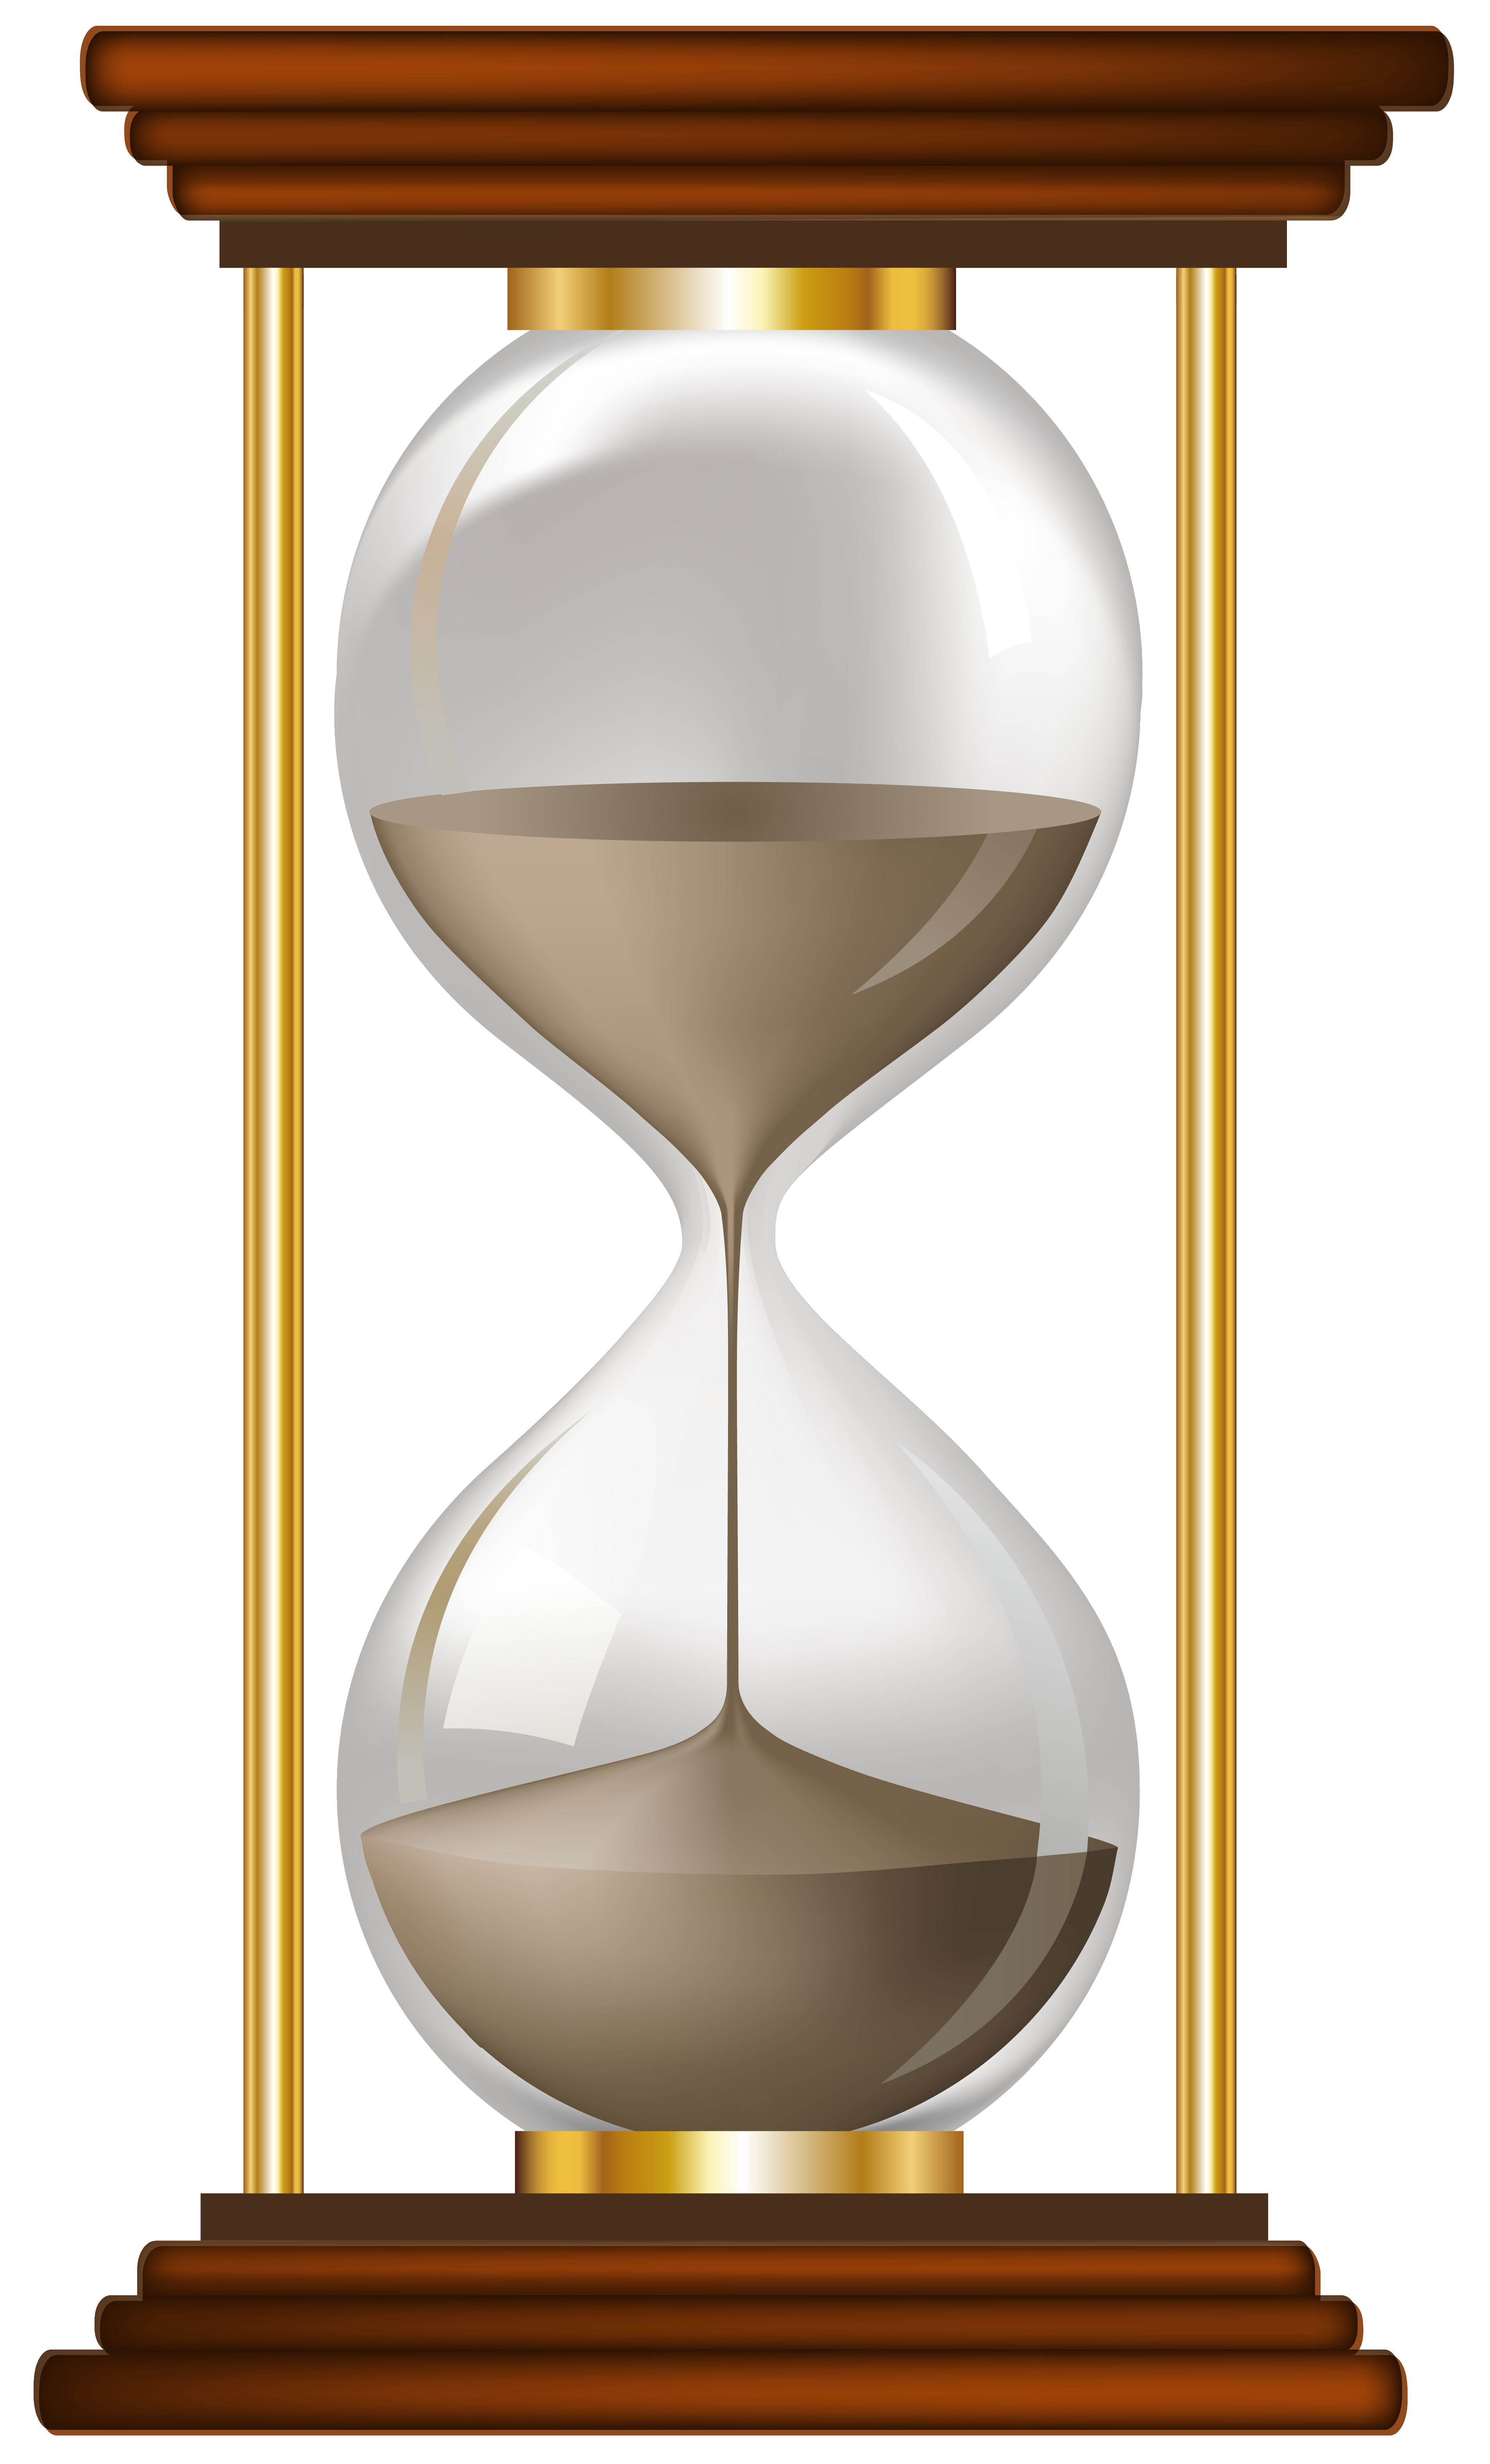 Sand clock png. Hourglass clipart empty clip